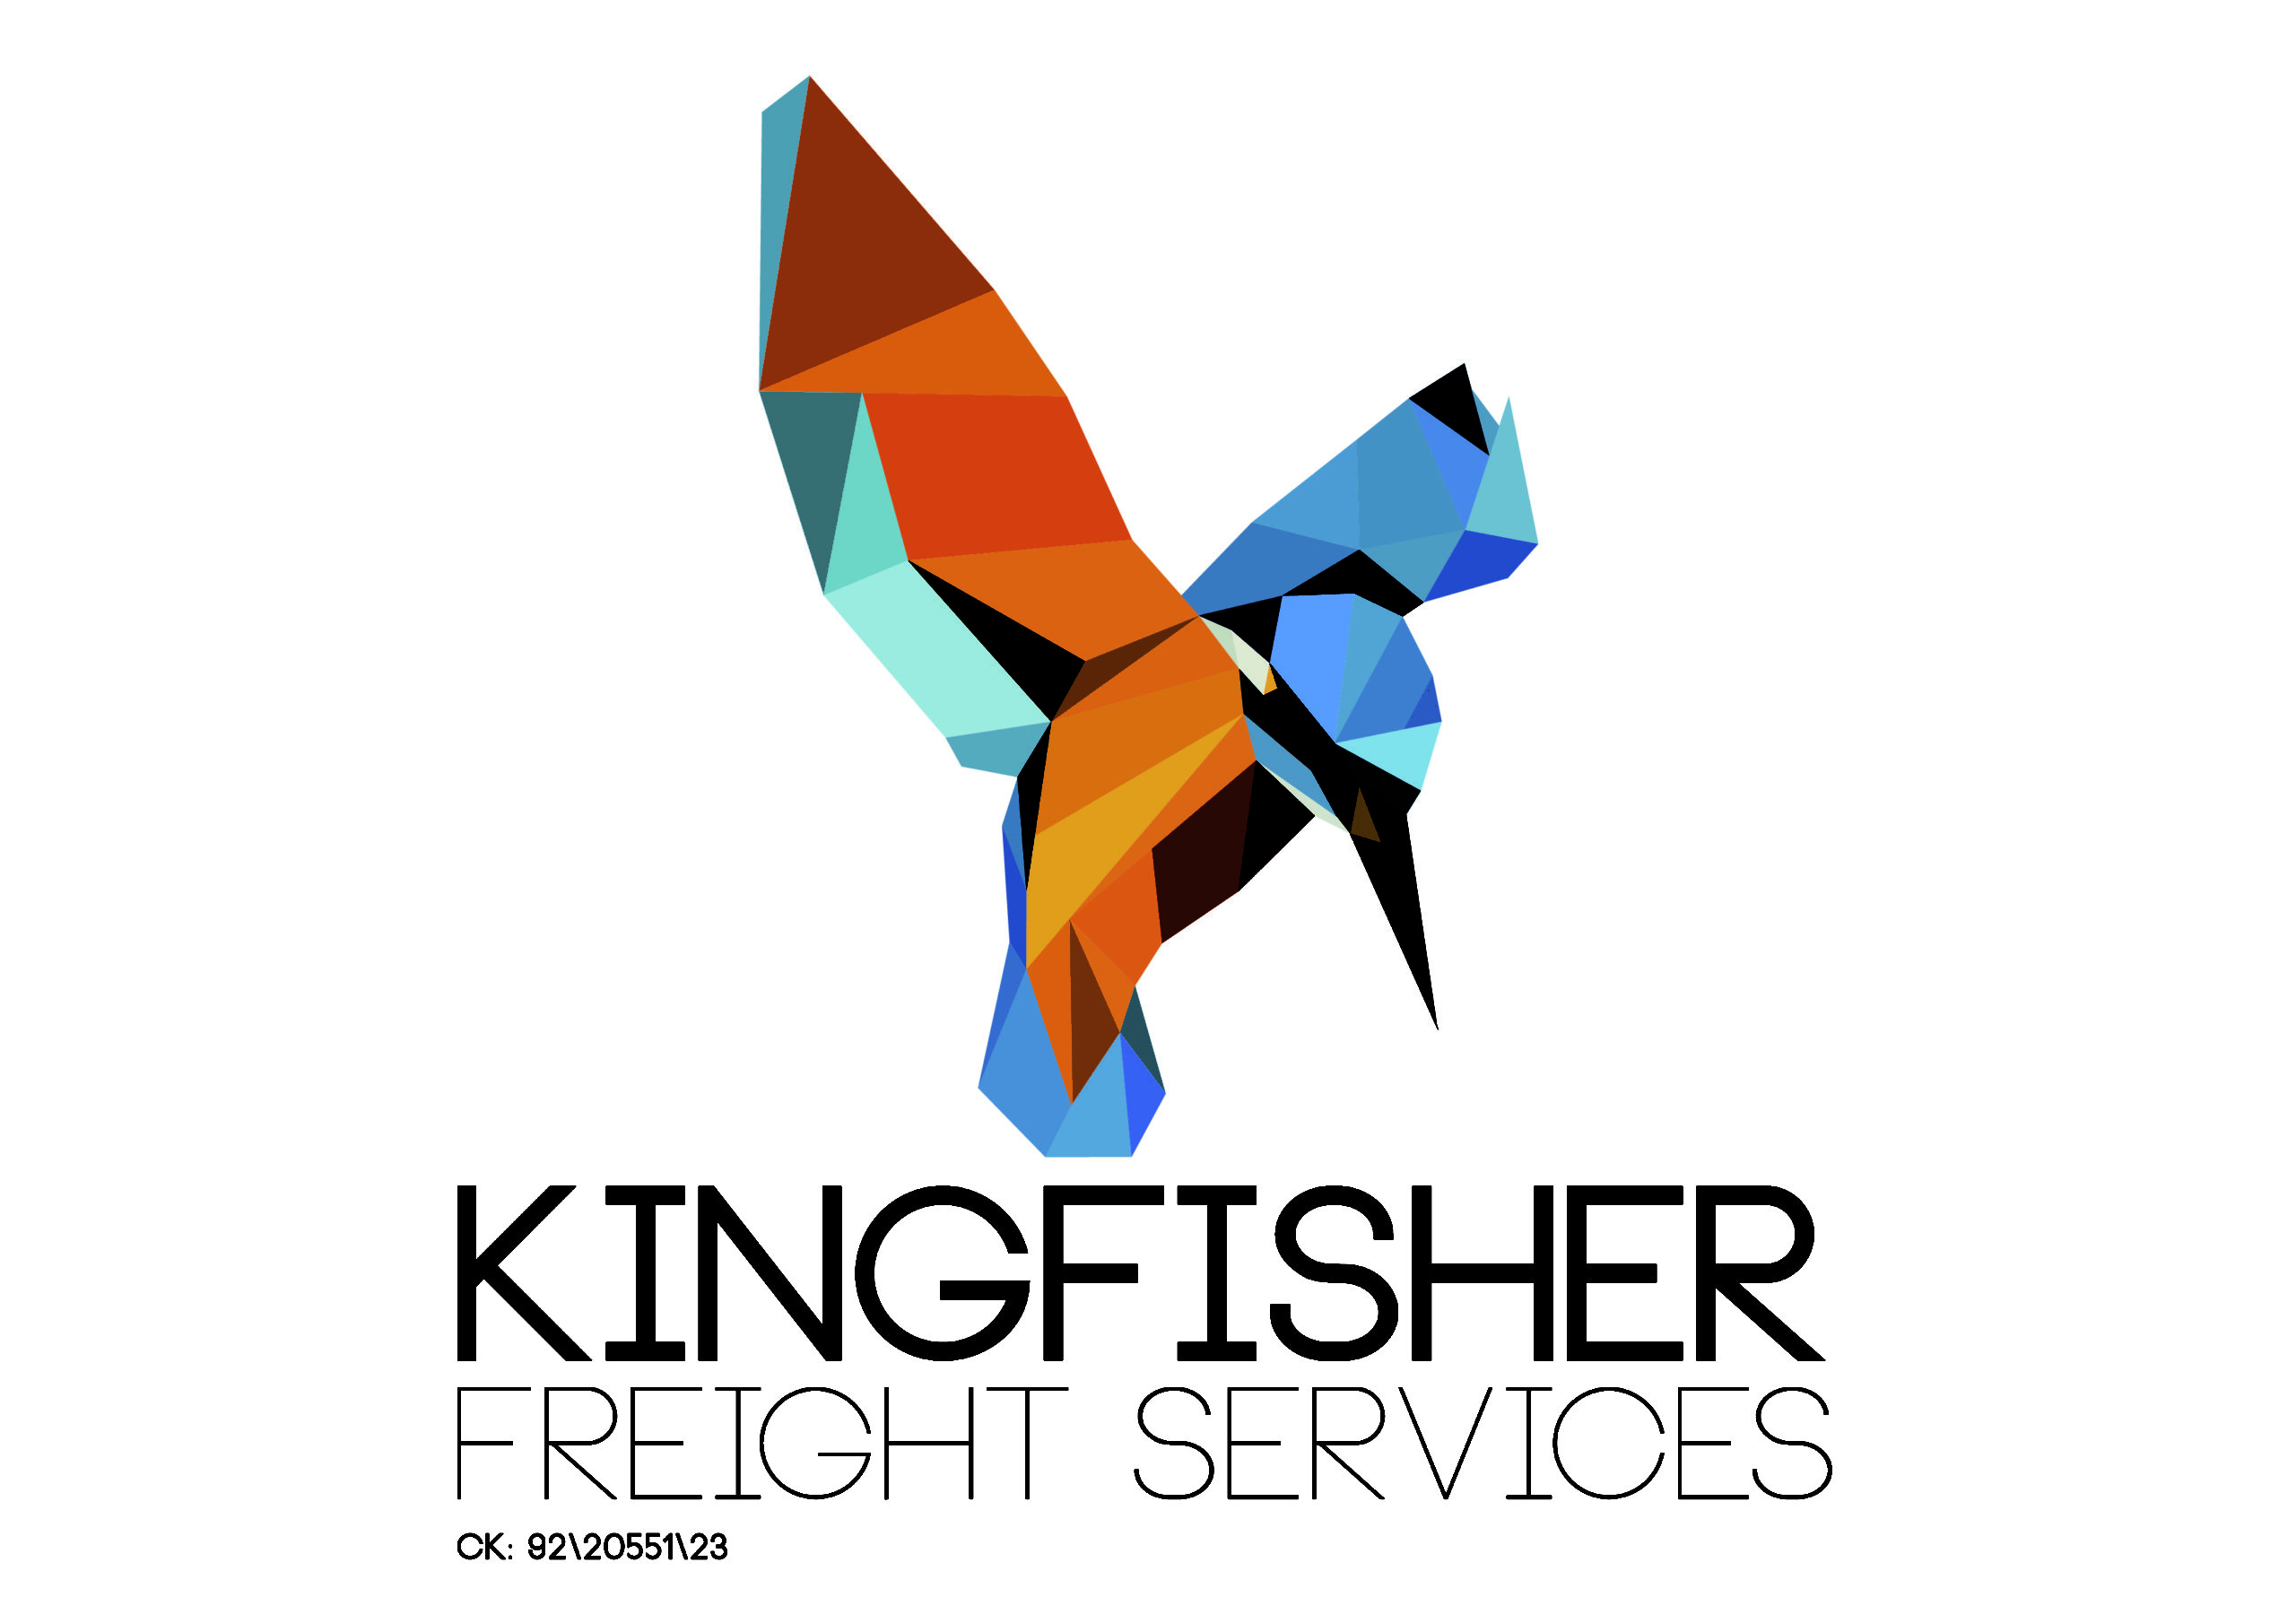 Kingfisher Freight Services cc